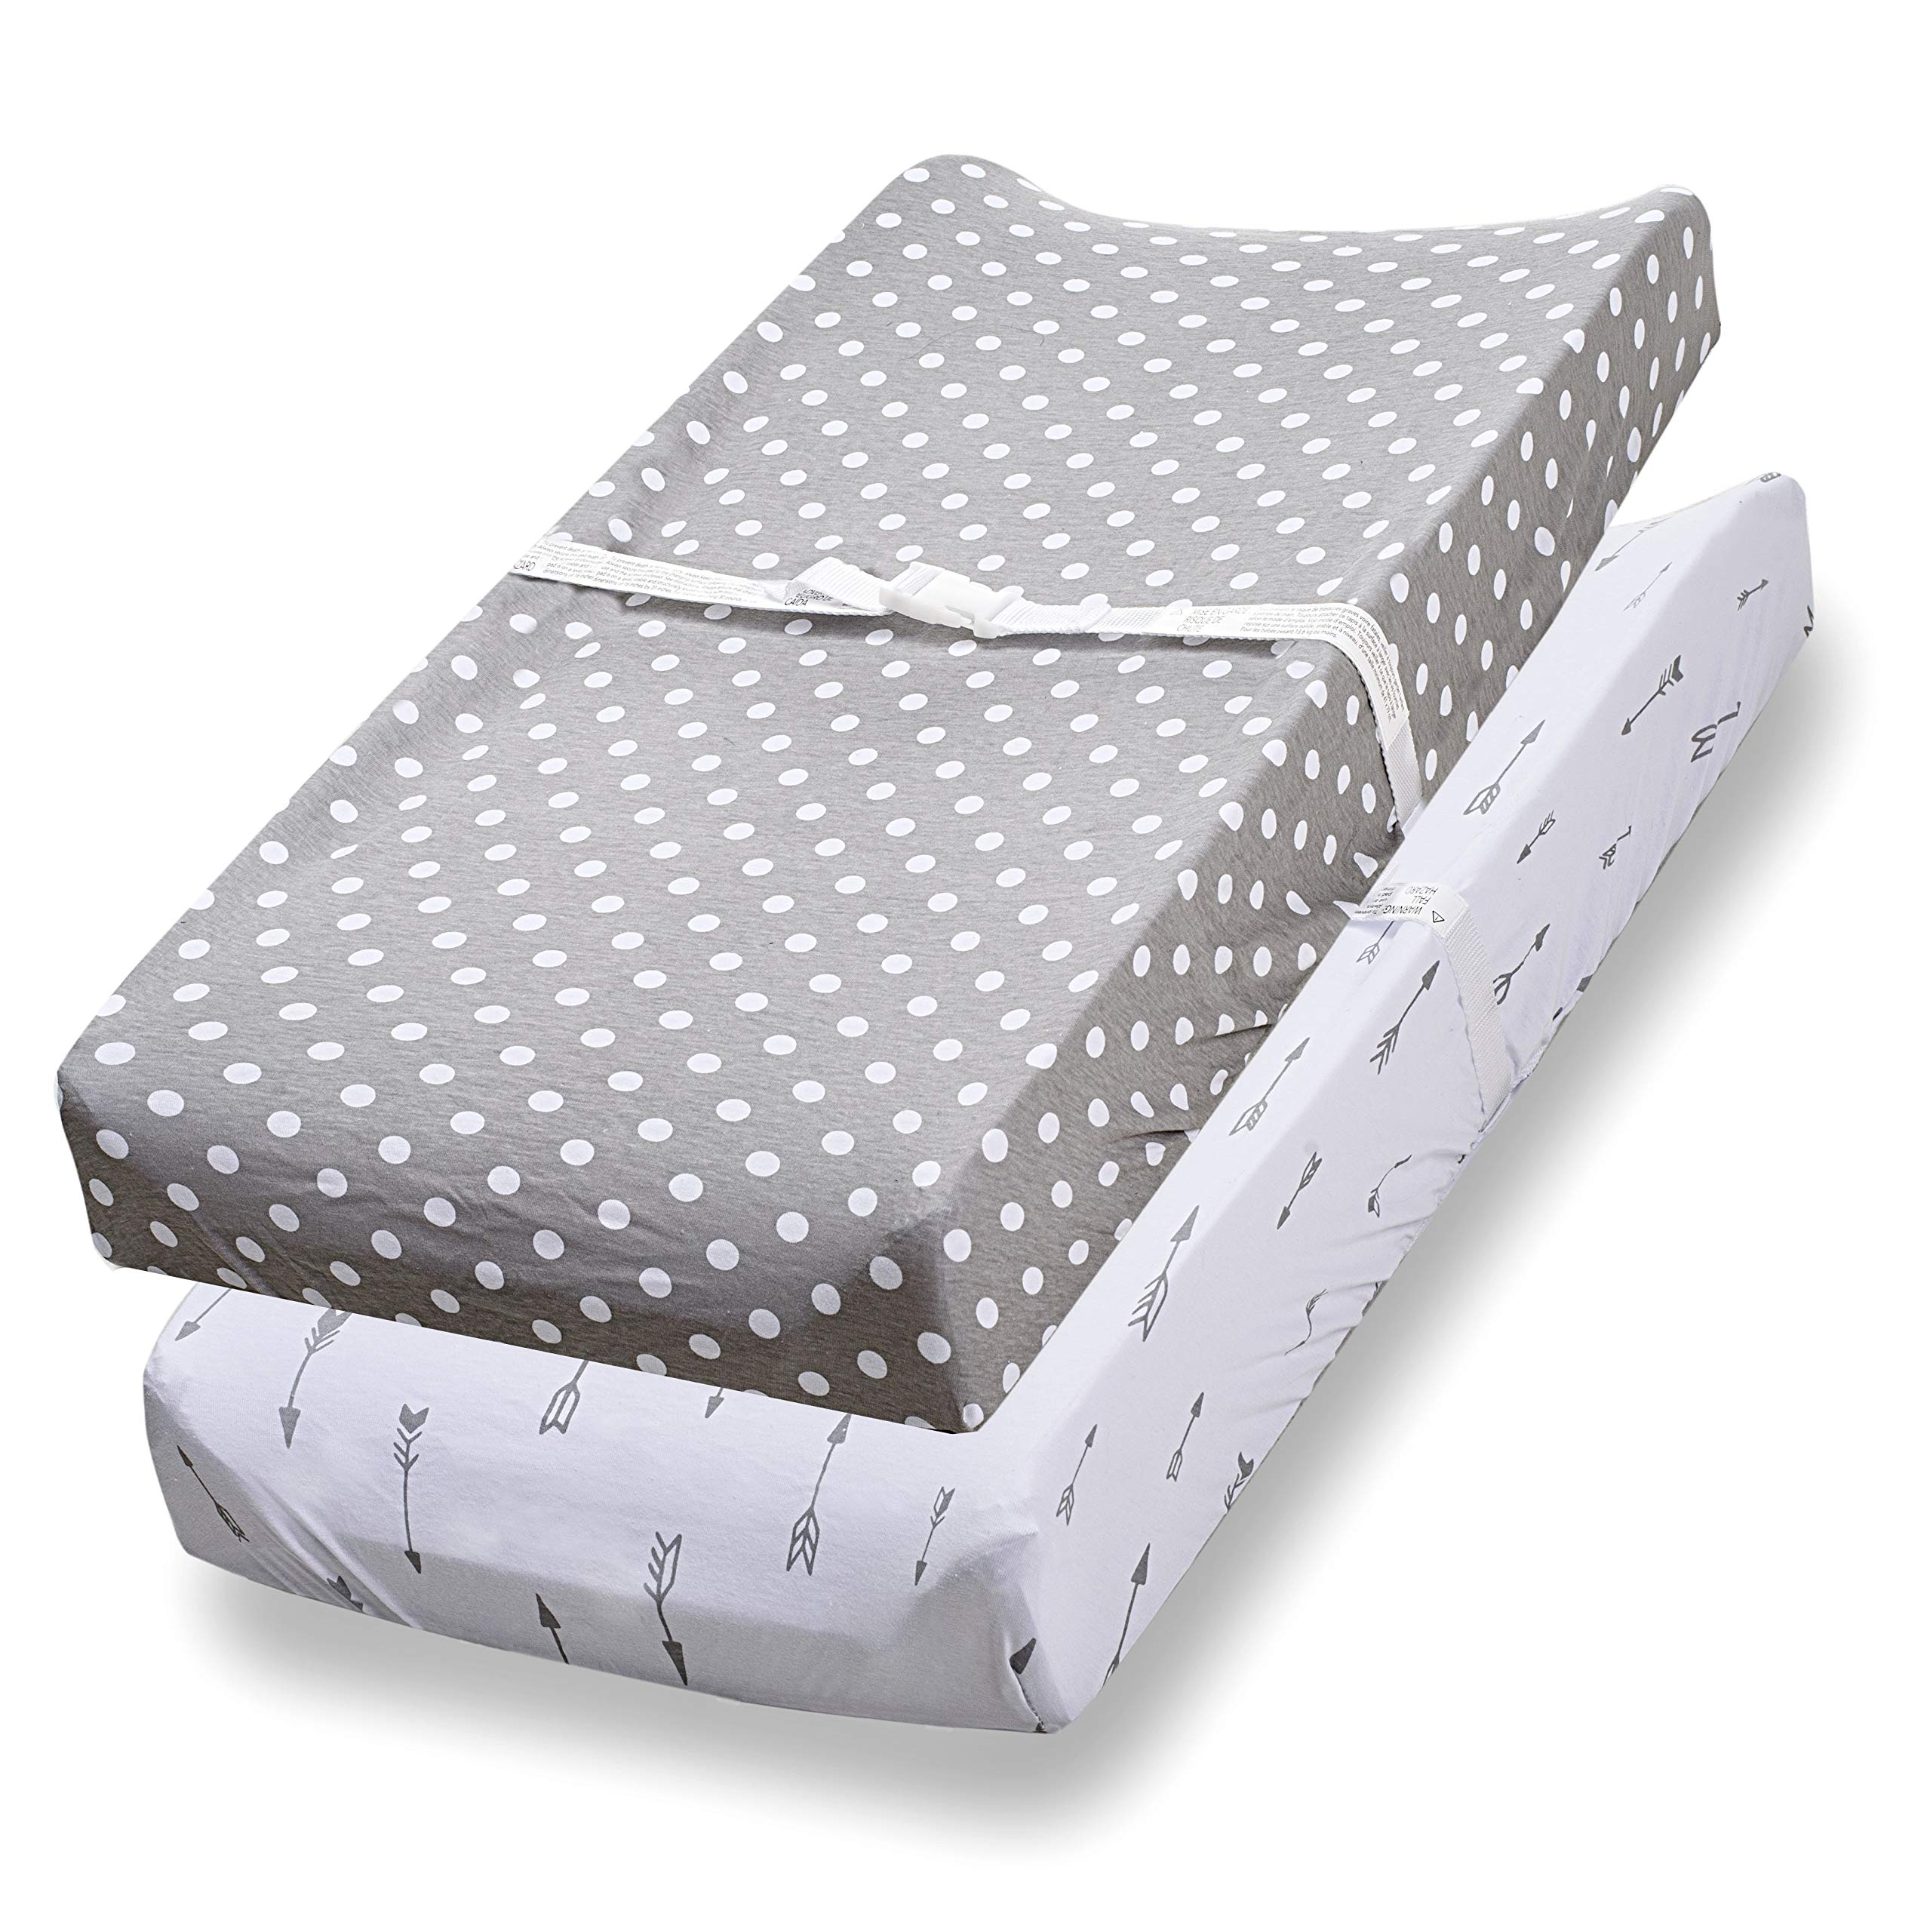 Changing Pad Cover, 2 Pack, 100% Jersey Cotton Unisex Sheets for Baby Girl and Boy, Grey Arrows and Polka Dots by Consciously by Consciously